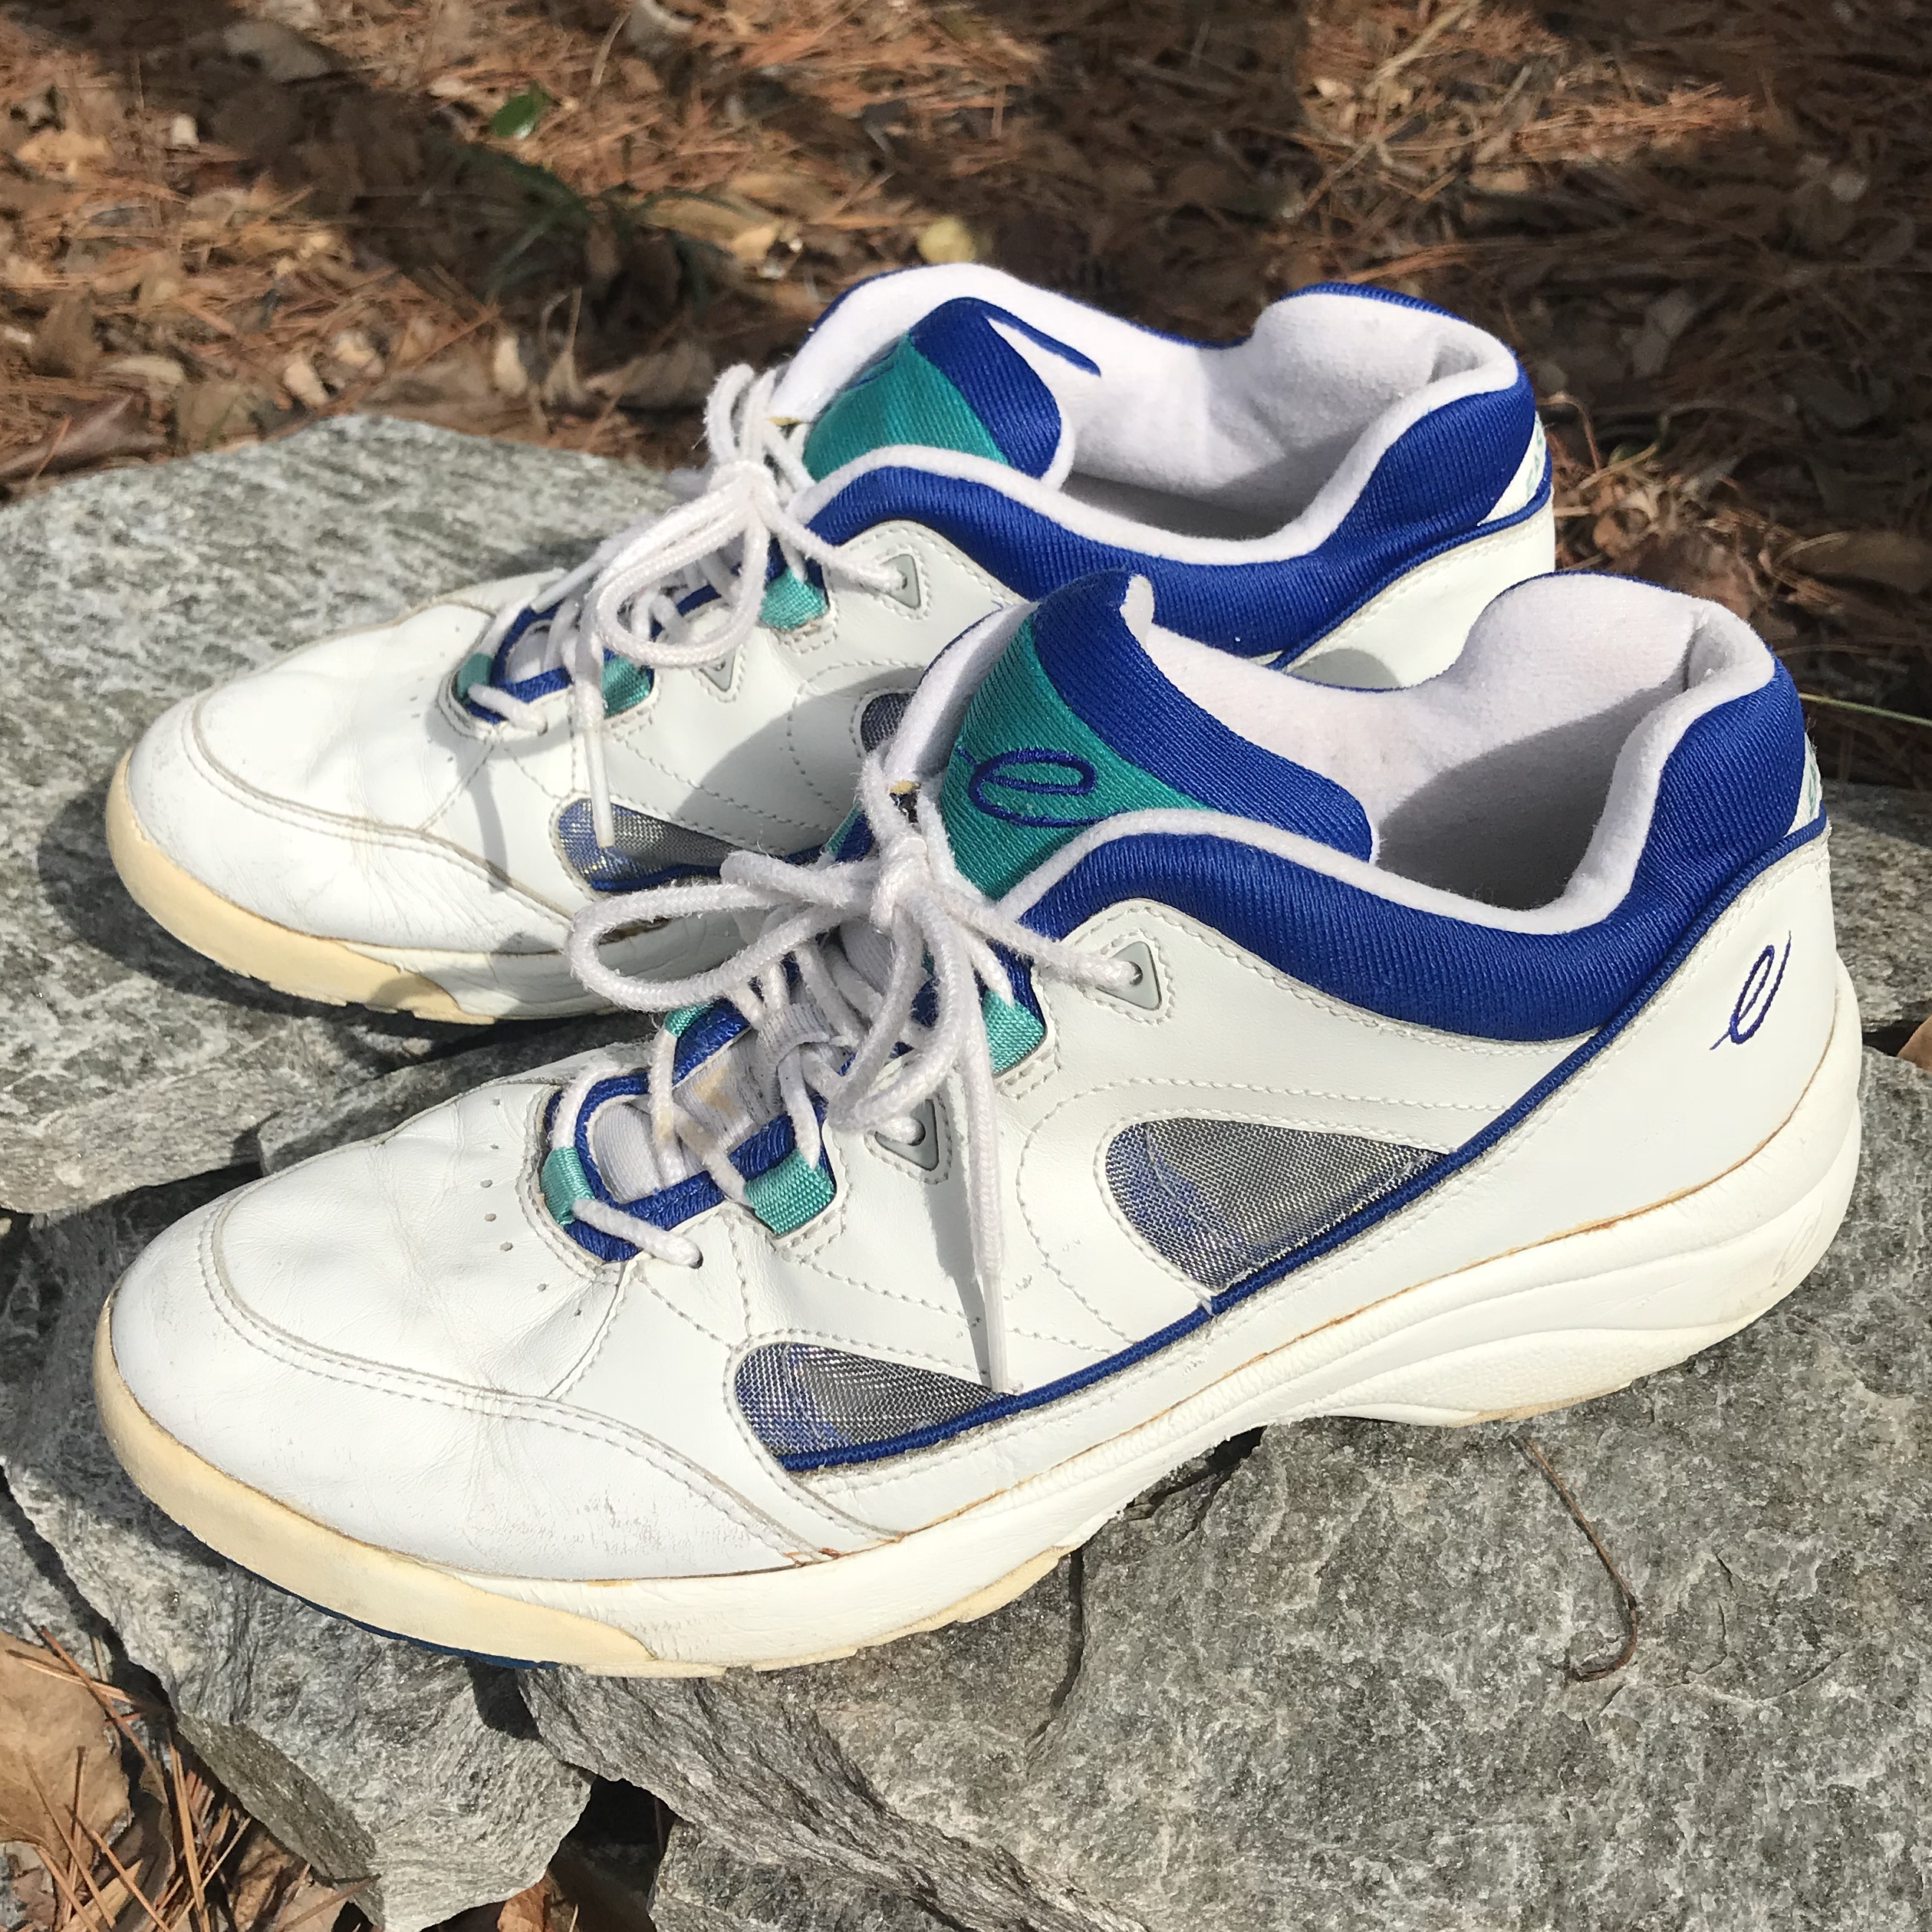 Vintage 90s Shoes Sneakers Mom/Dad shoe